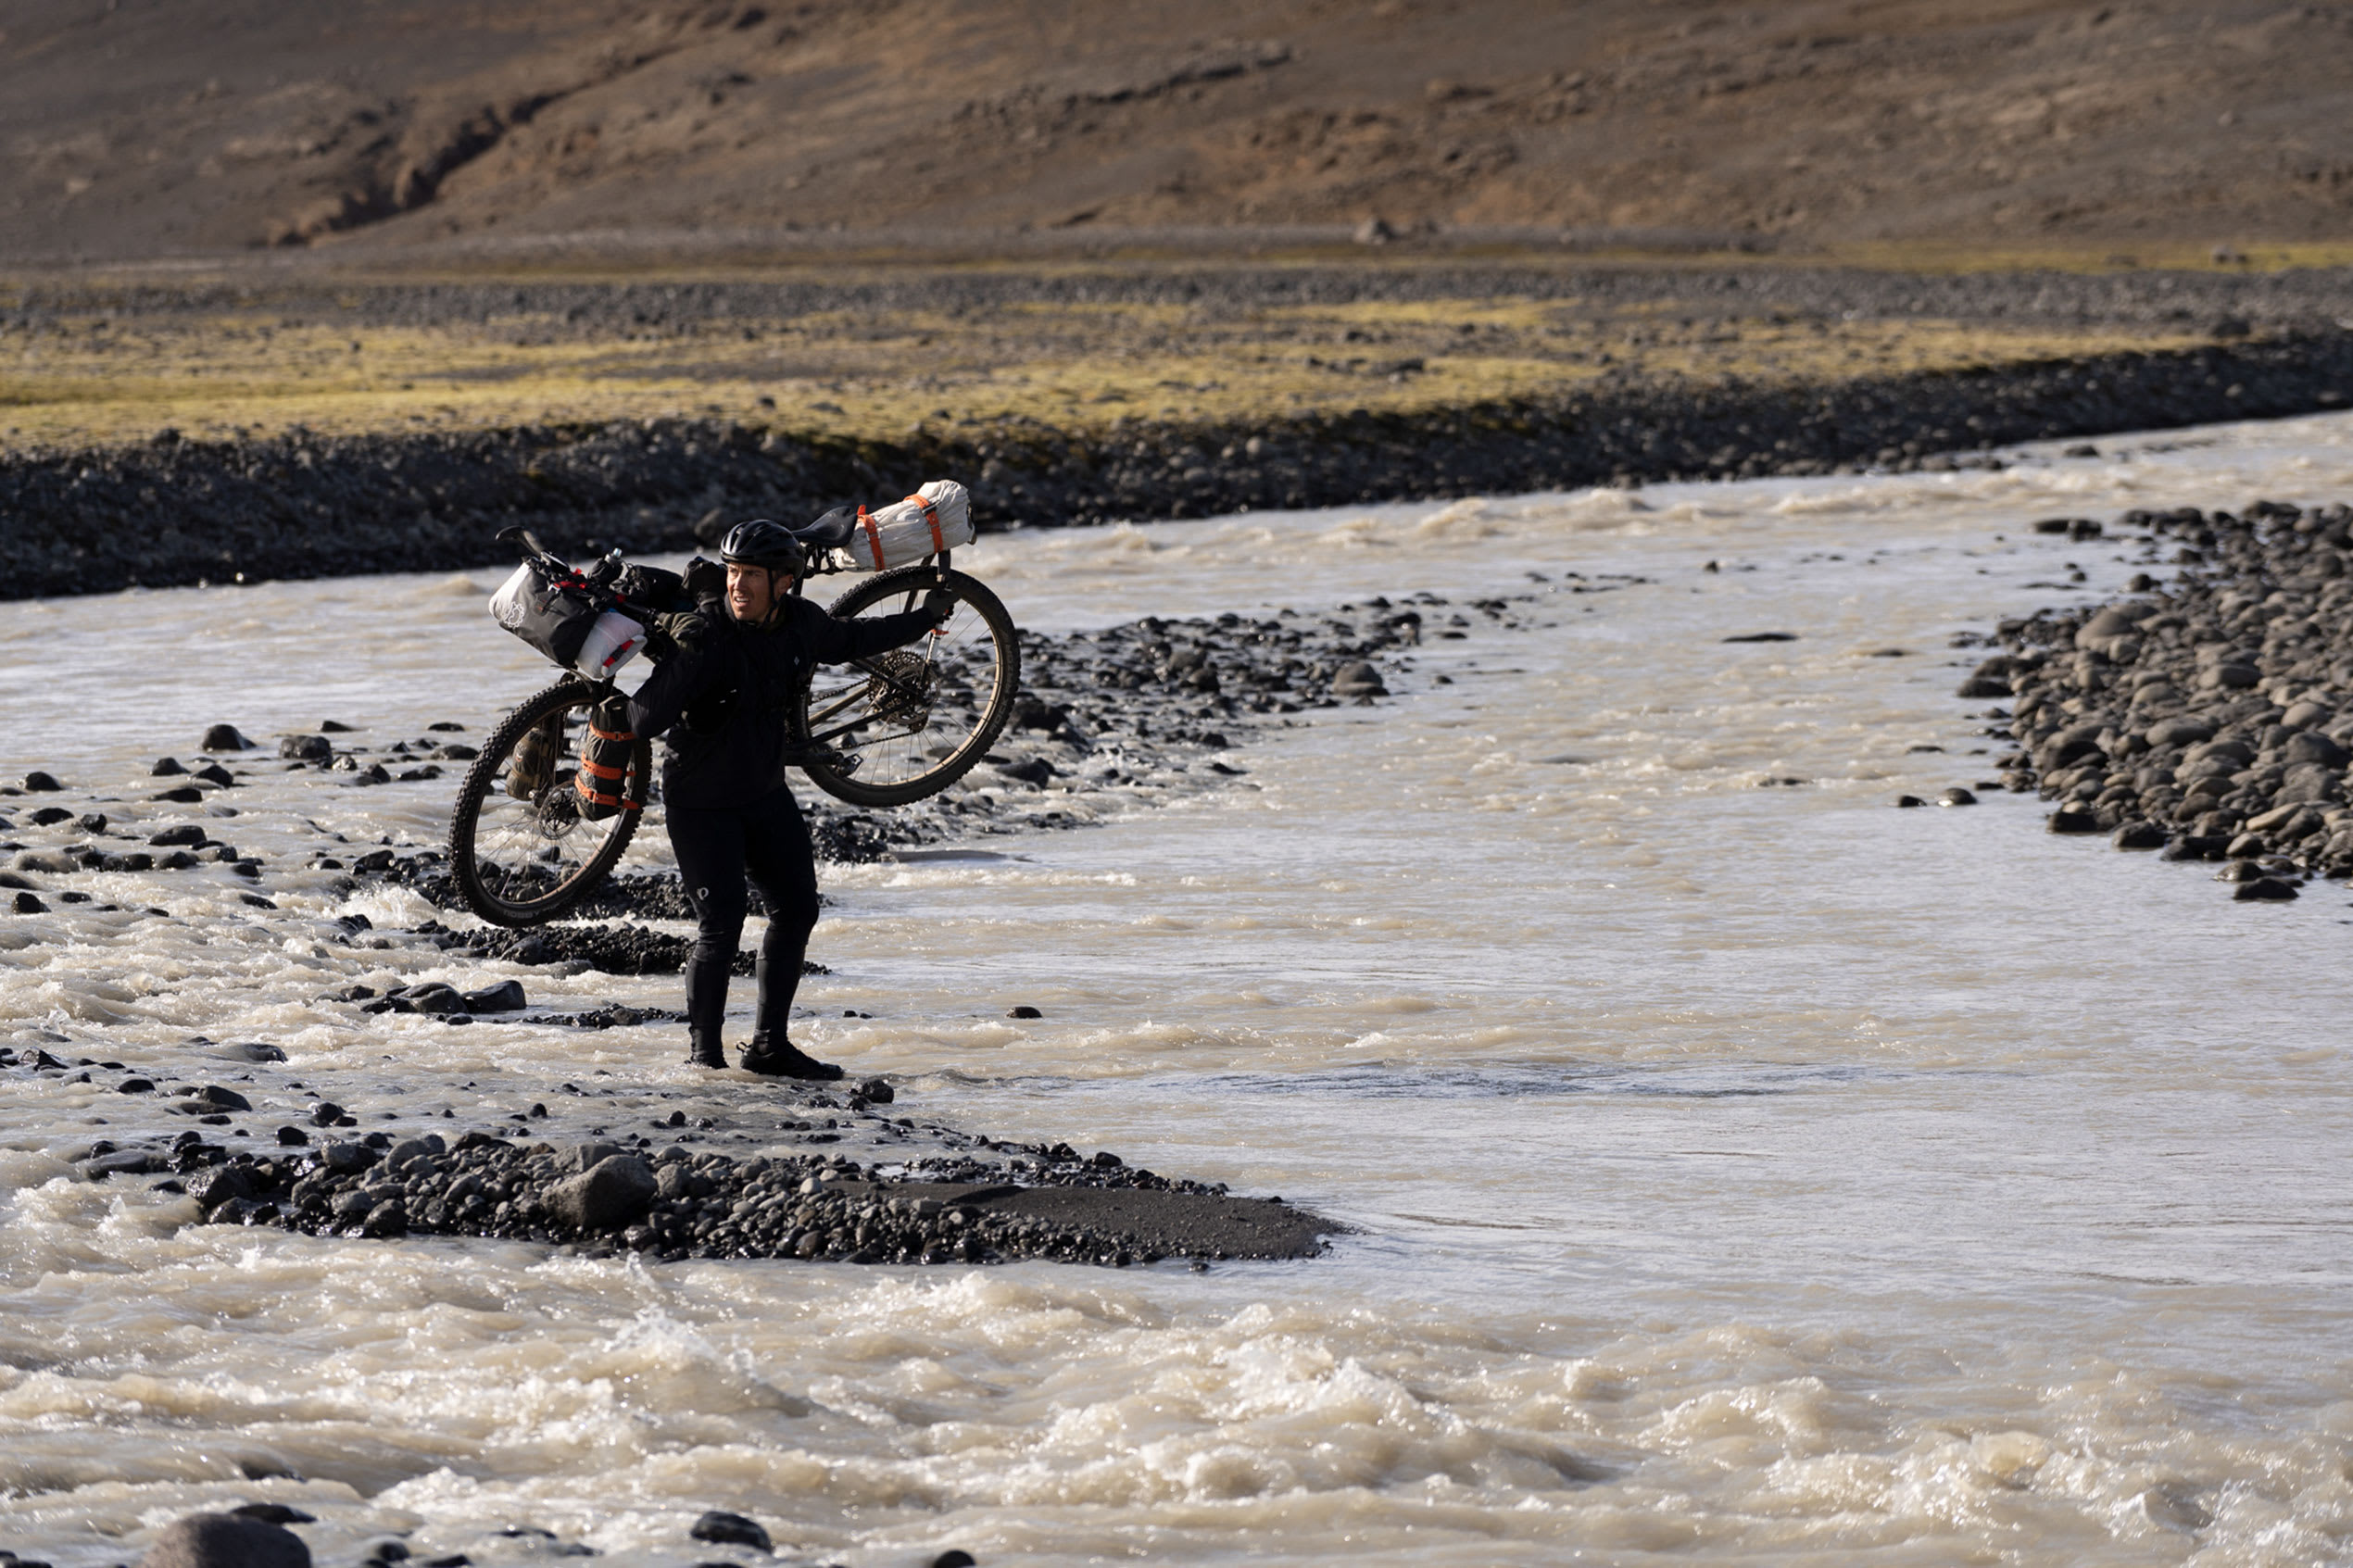 an image of a man carrying a bike over his shoulders and walking through a river in Iceland